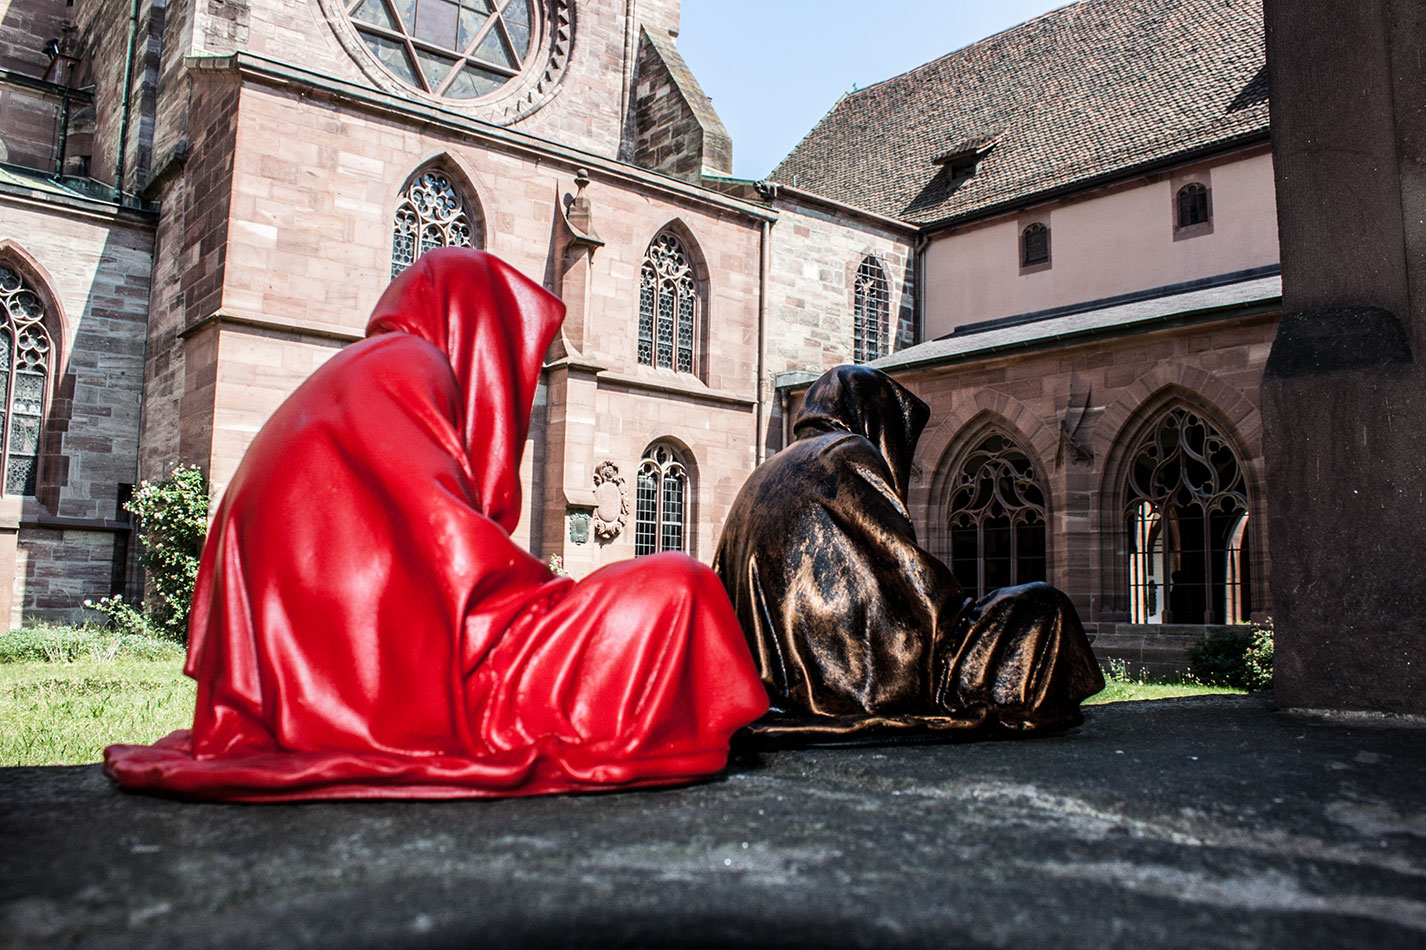 highlights-public-artbasel-scope-art-show-guardians-of-time-manfred-kielnhofer-steinreich-contemporary-art-sculpture-tour-art-parcours-1515